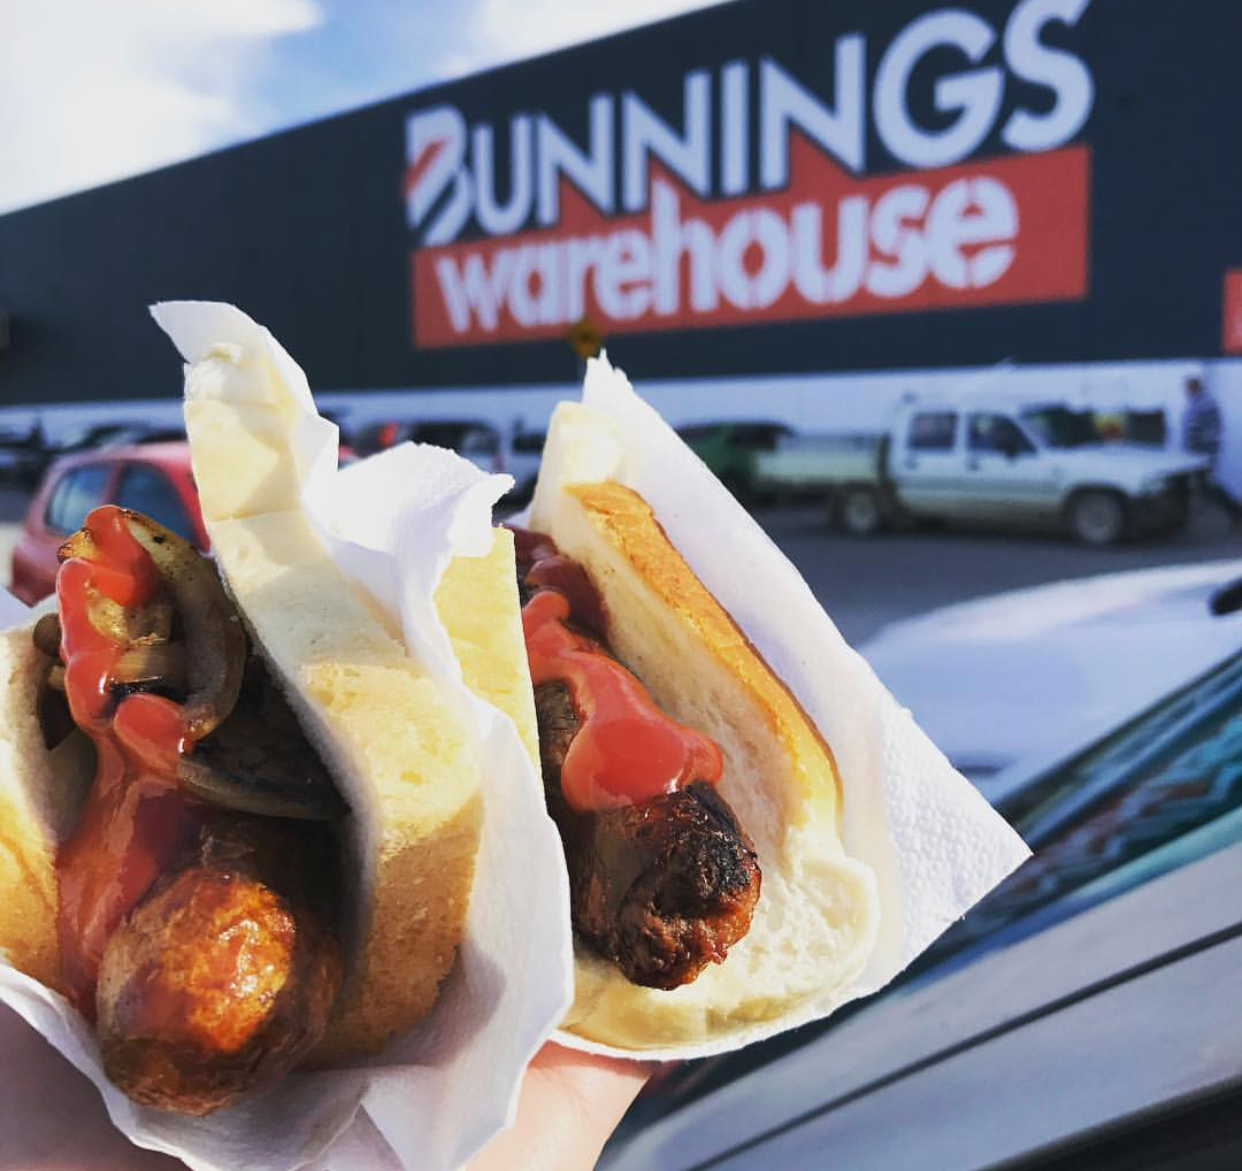 6. Bunnings sausages - The only store in the world where buying hardware on the weekends also becomes a dining experience.